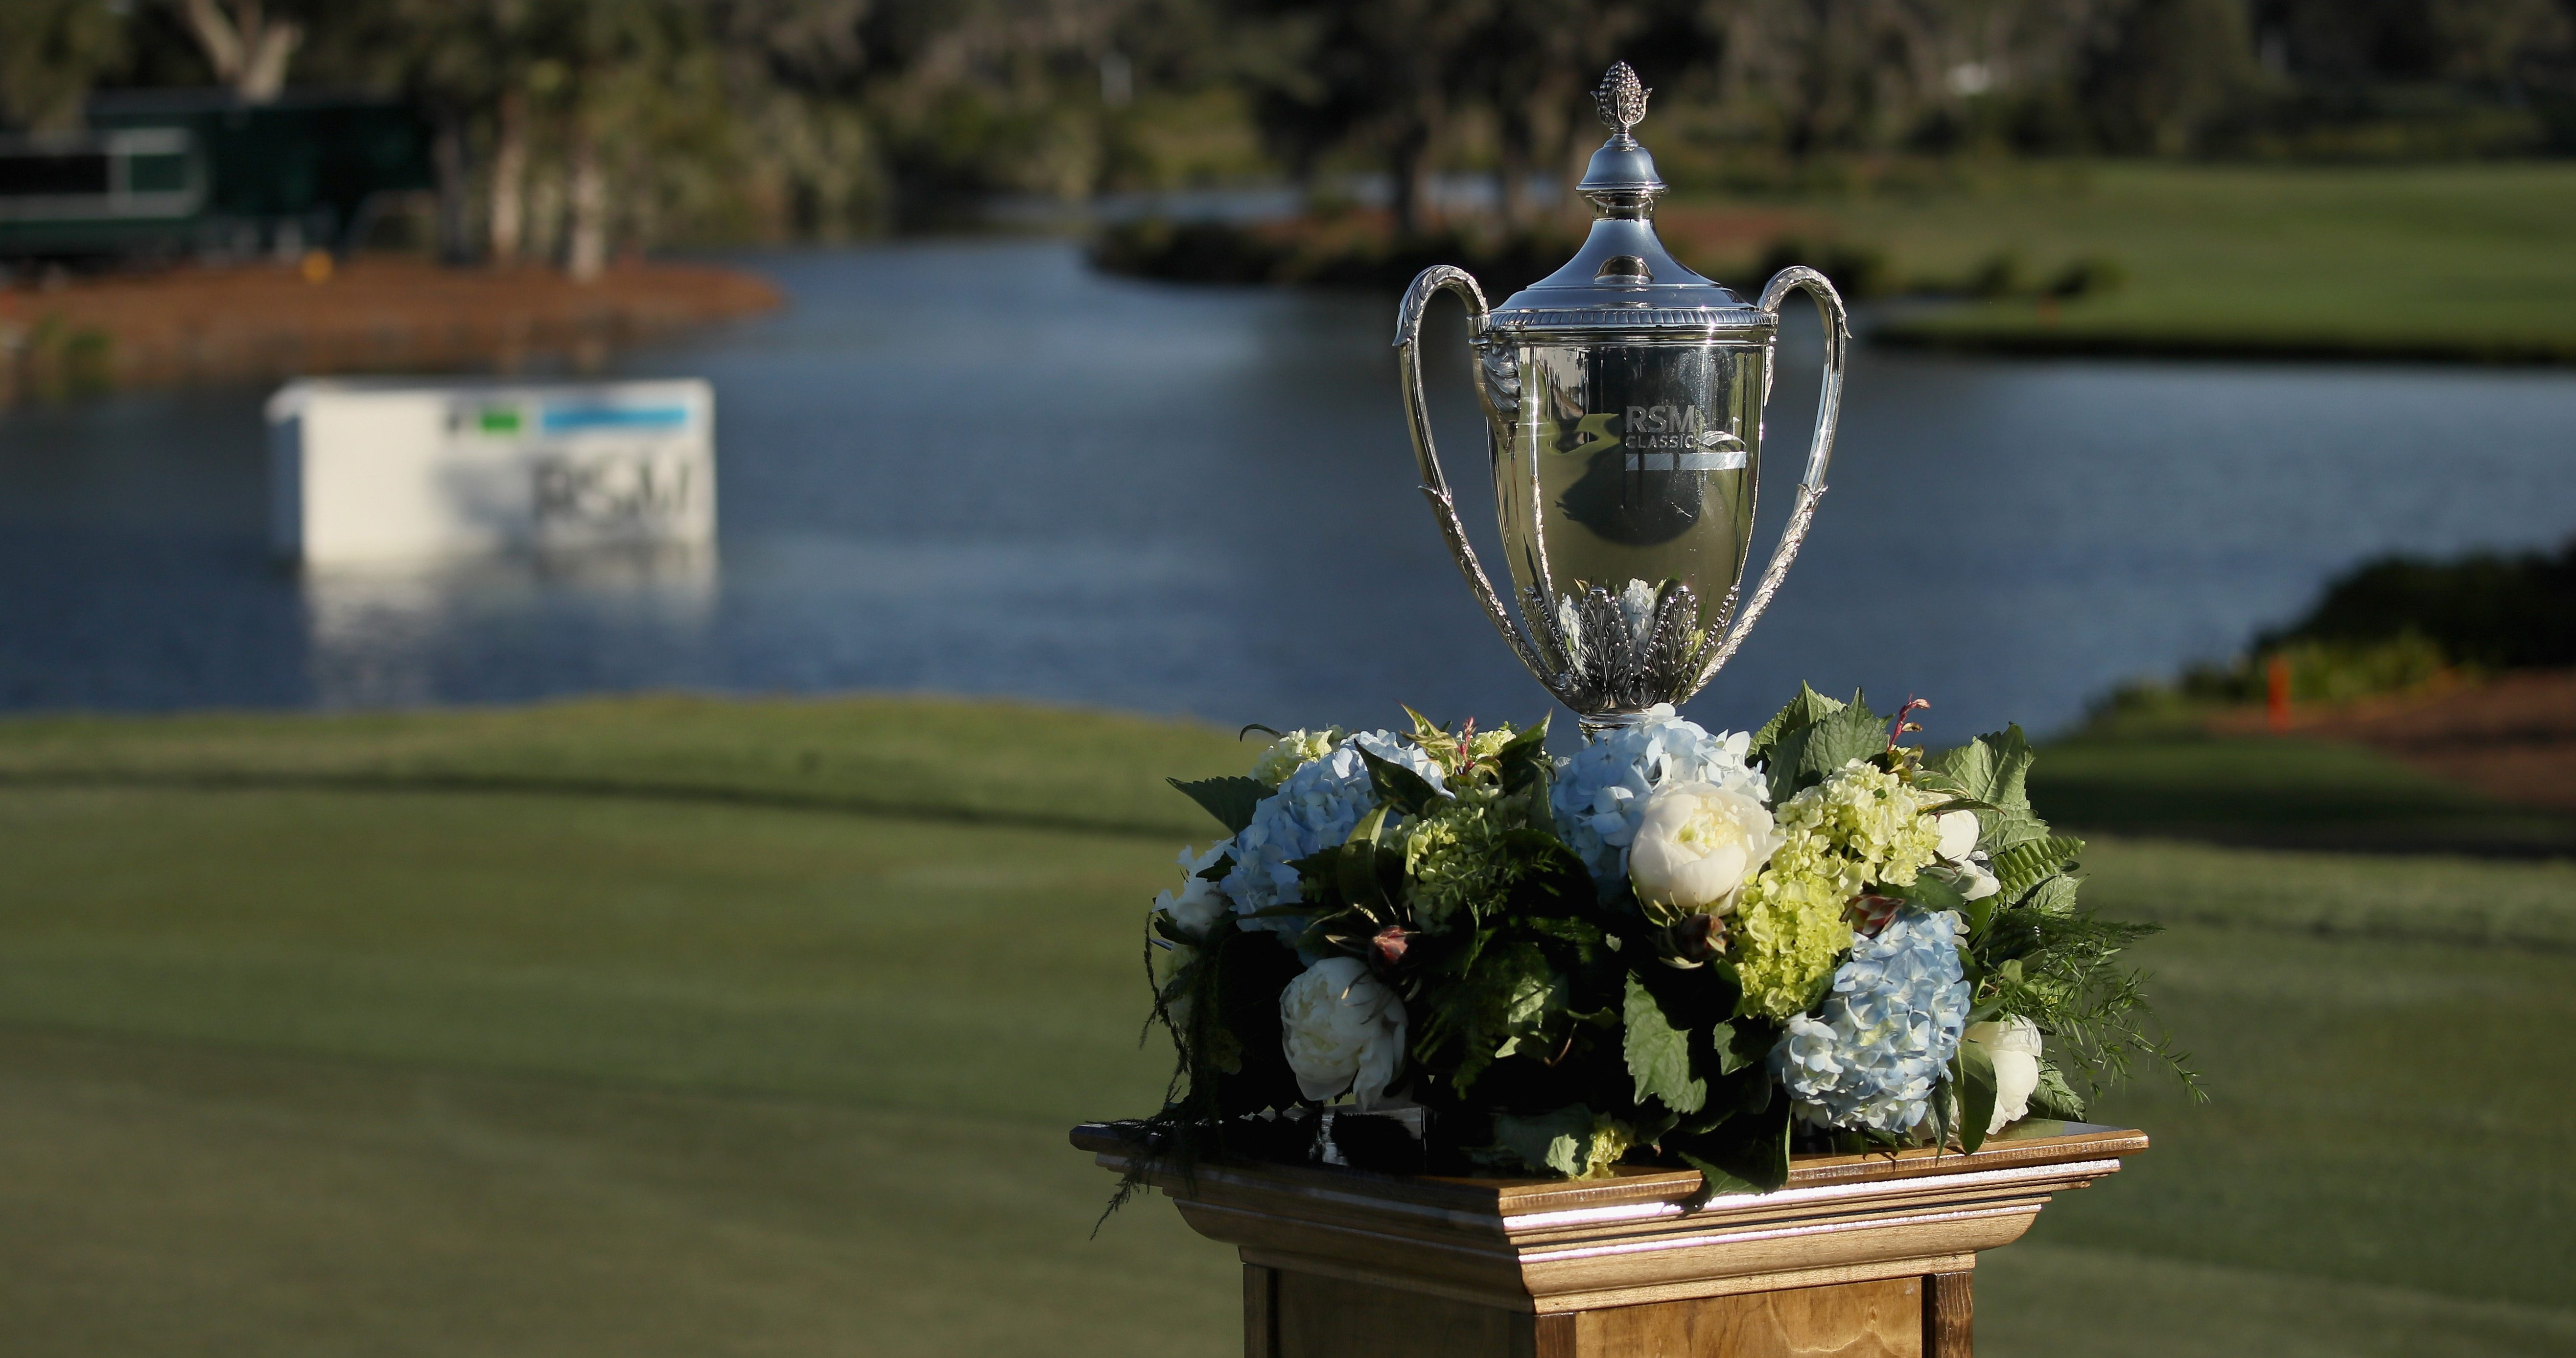 ST SIMONS ISLAND, GA - NOVEMBER 21: A detailed view of Mackenzie Hughes of Canada champions trophy on the 18th green after the playoff in the final round of the RSM Classic at Sea Island Resort Seaside Course on November 21, 2016 in St Simons Island, Georgia. (Photo by Justin Heiman/Getty Images)